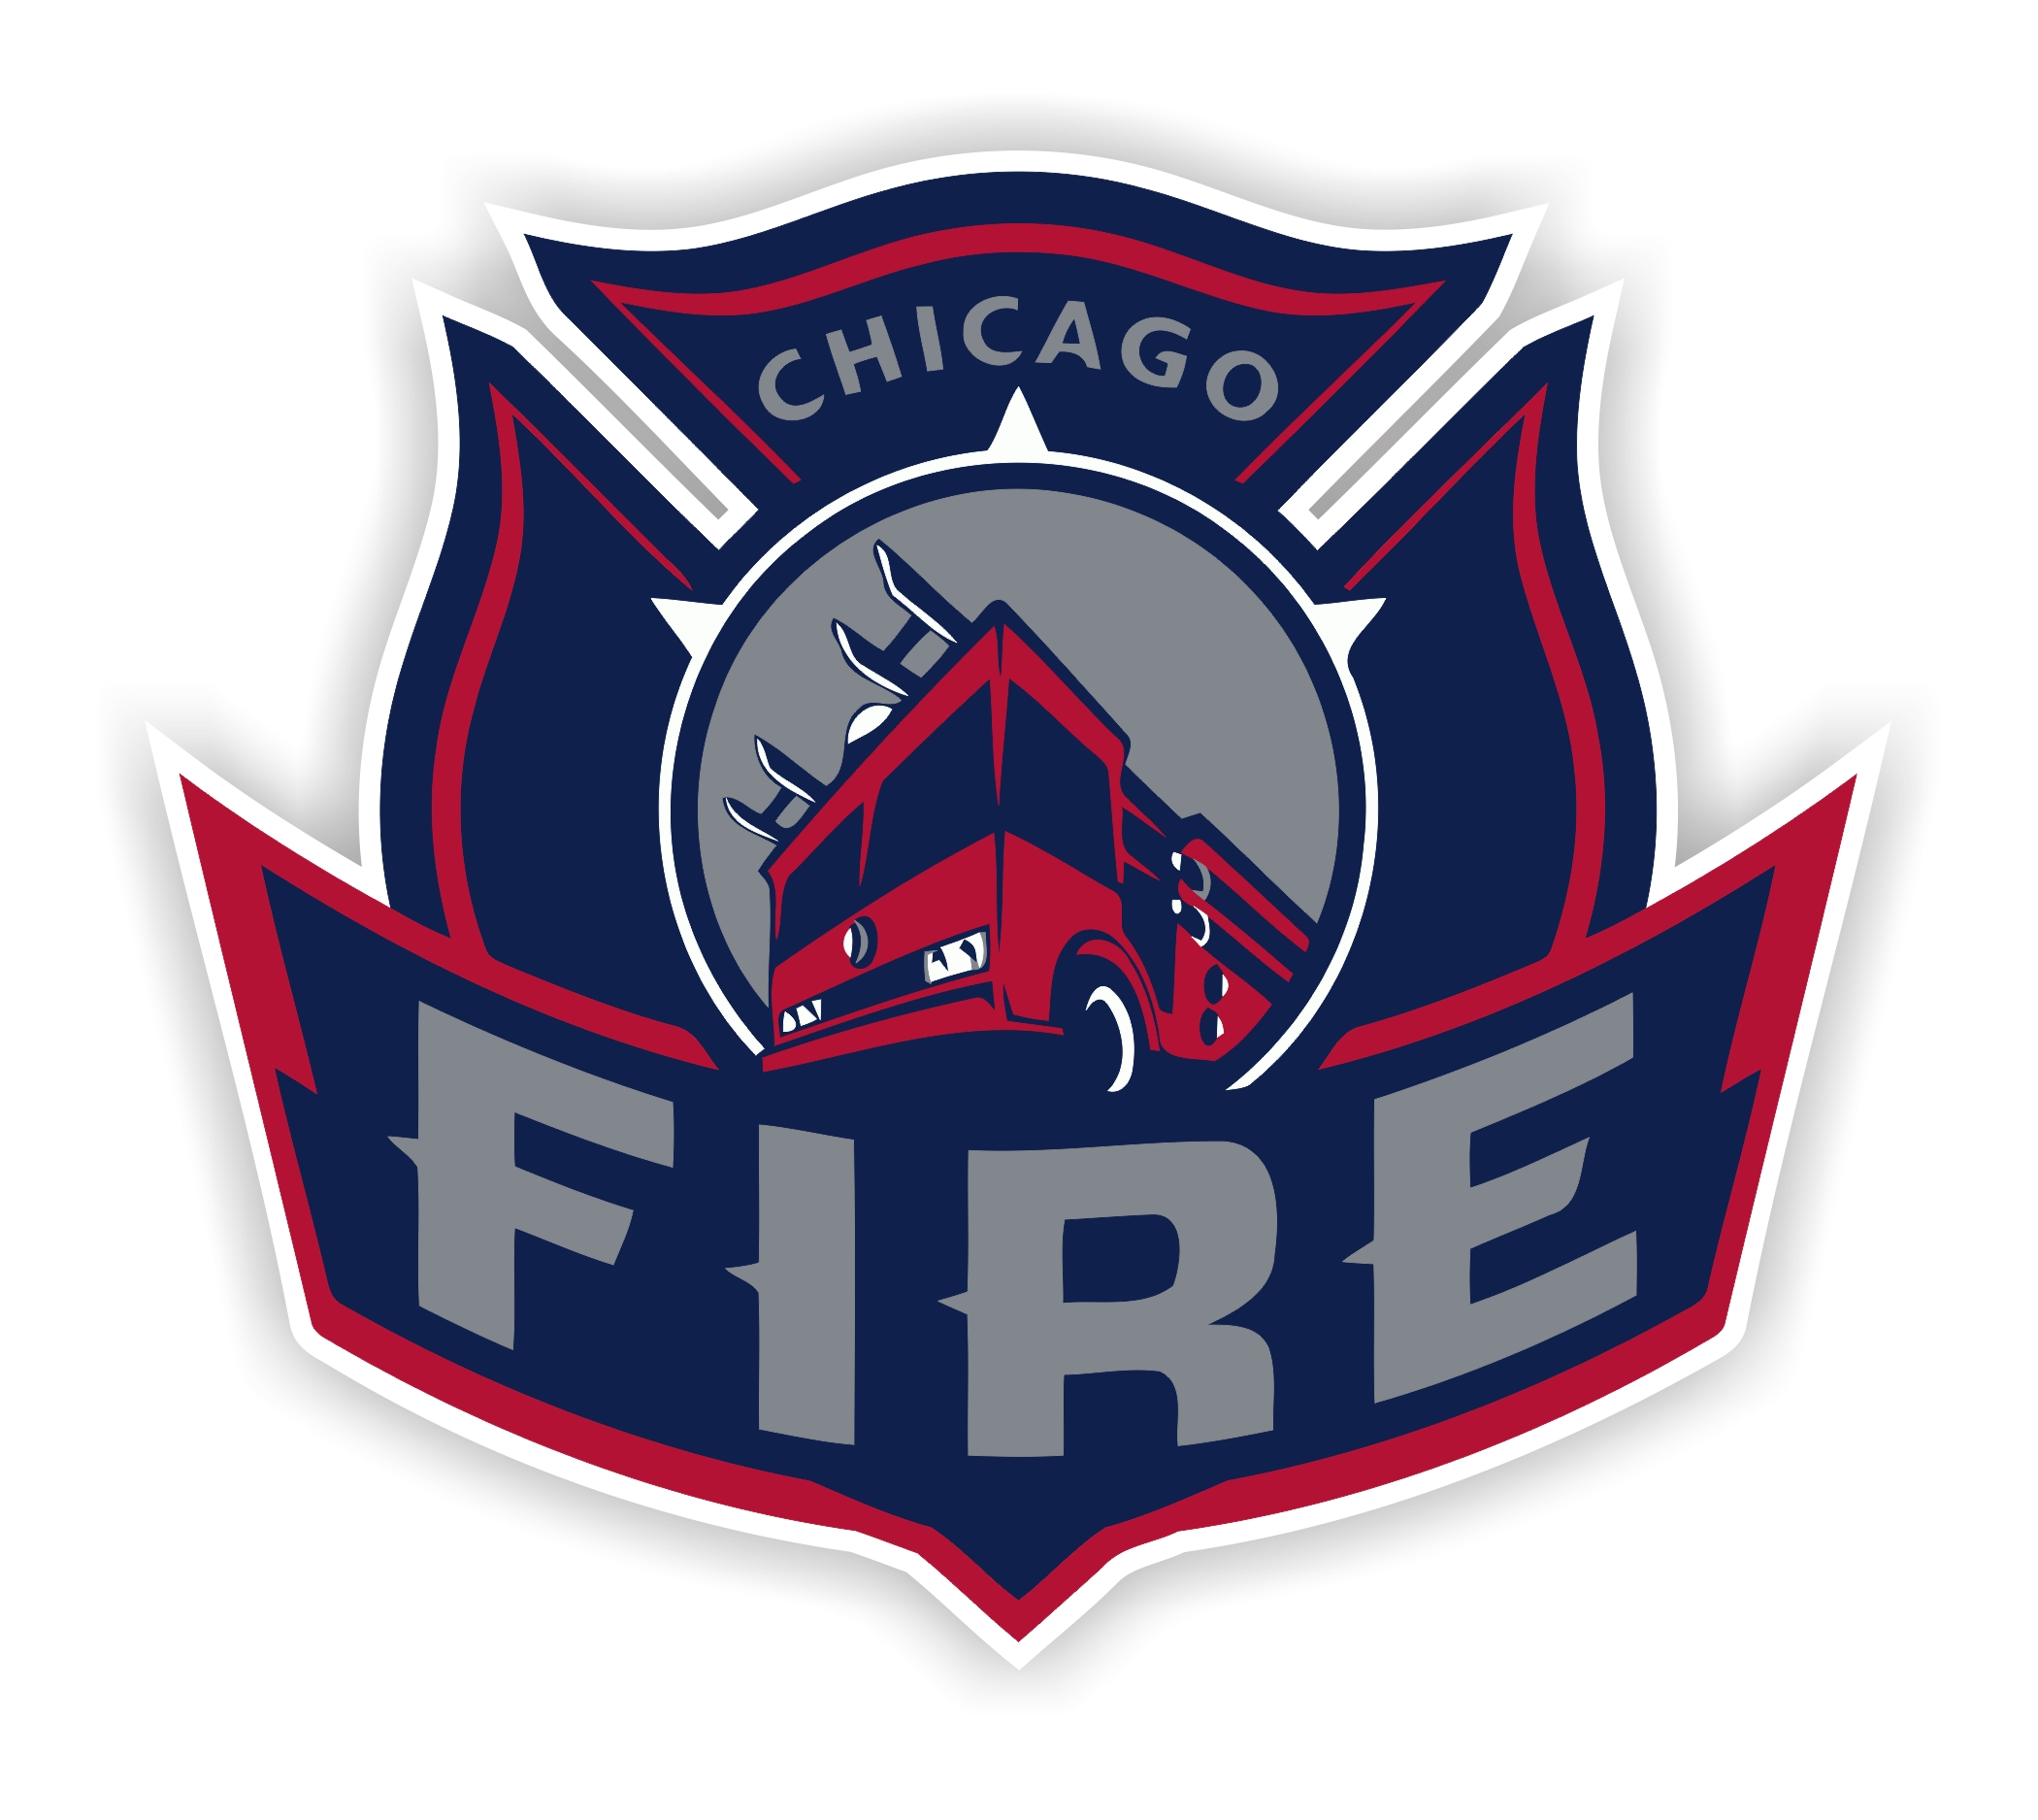 Chicago fire die cut decal addthis sharing sidebar biocorpaavc Images